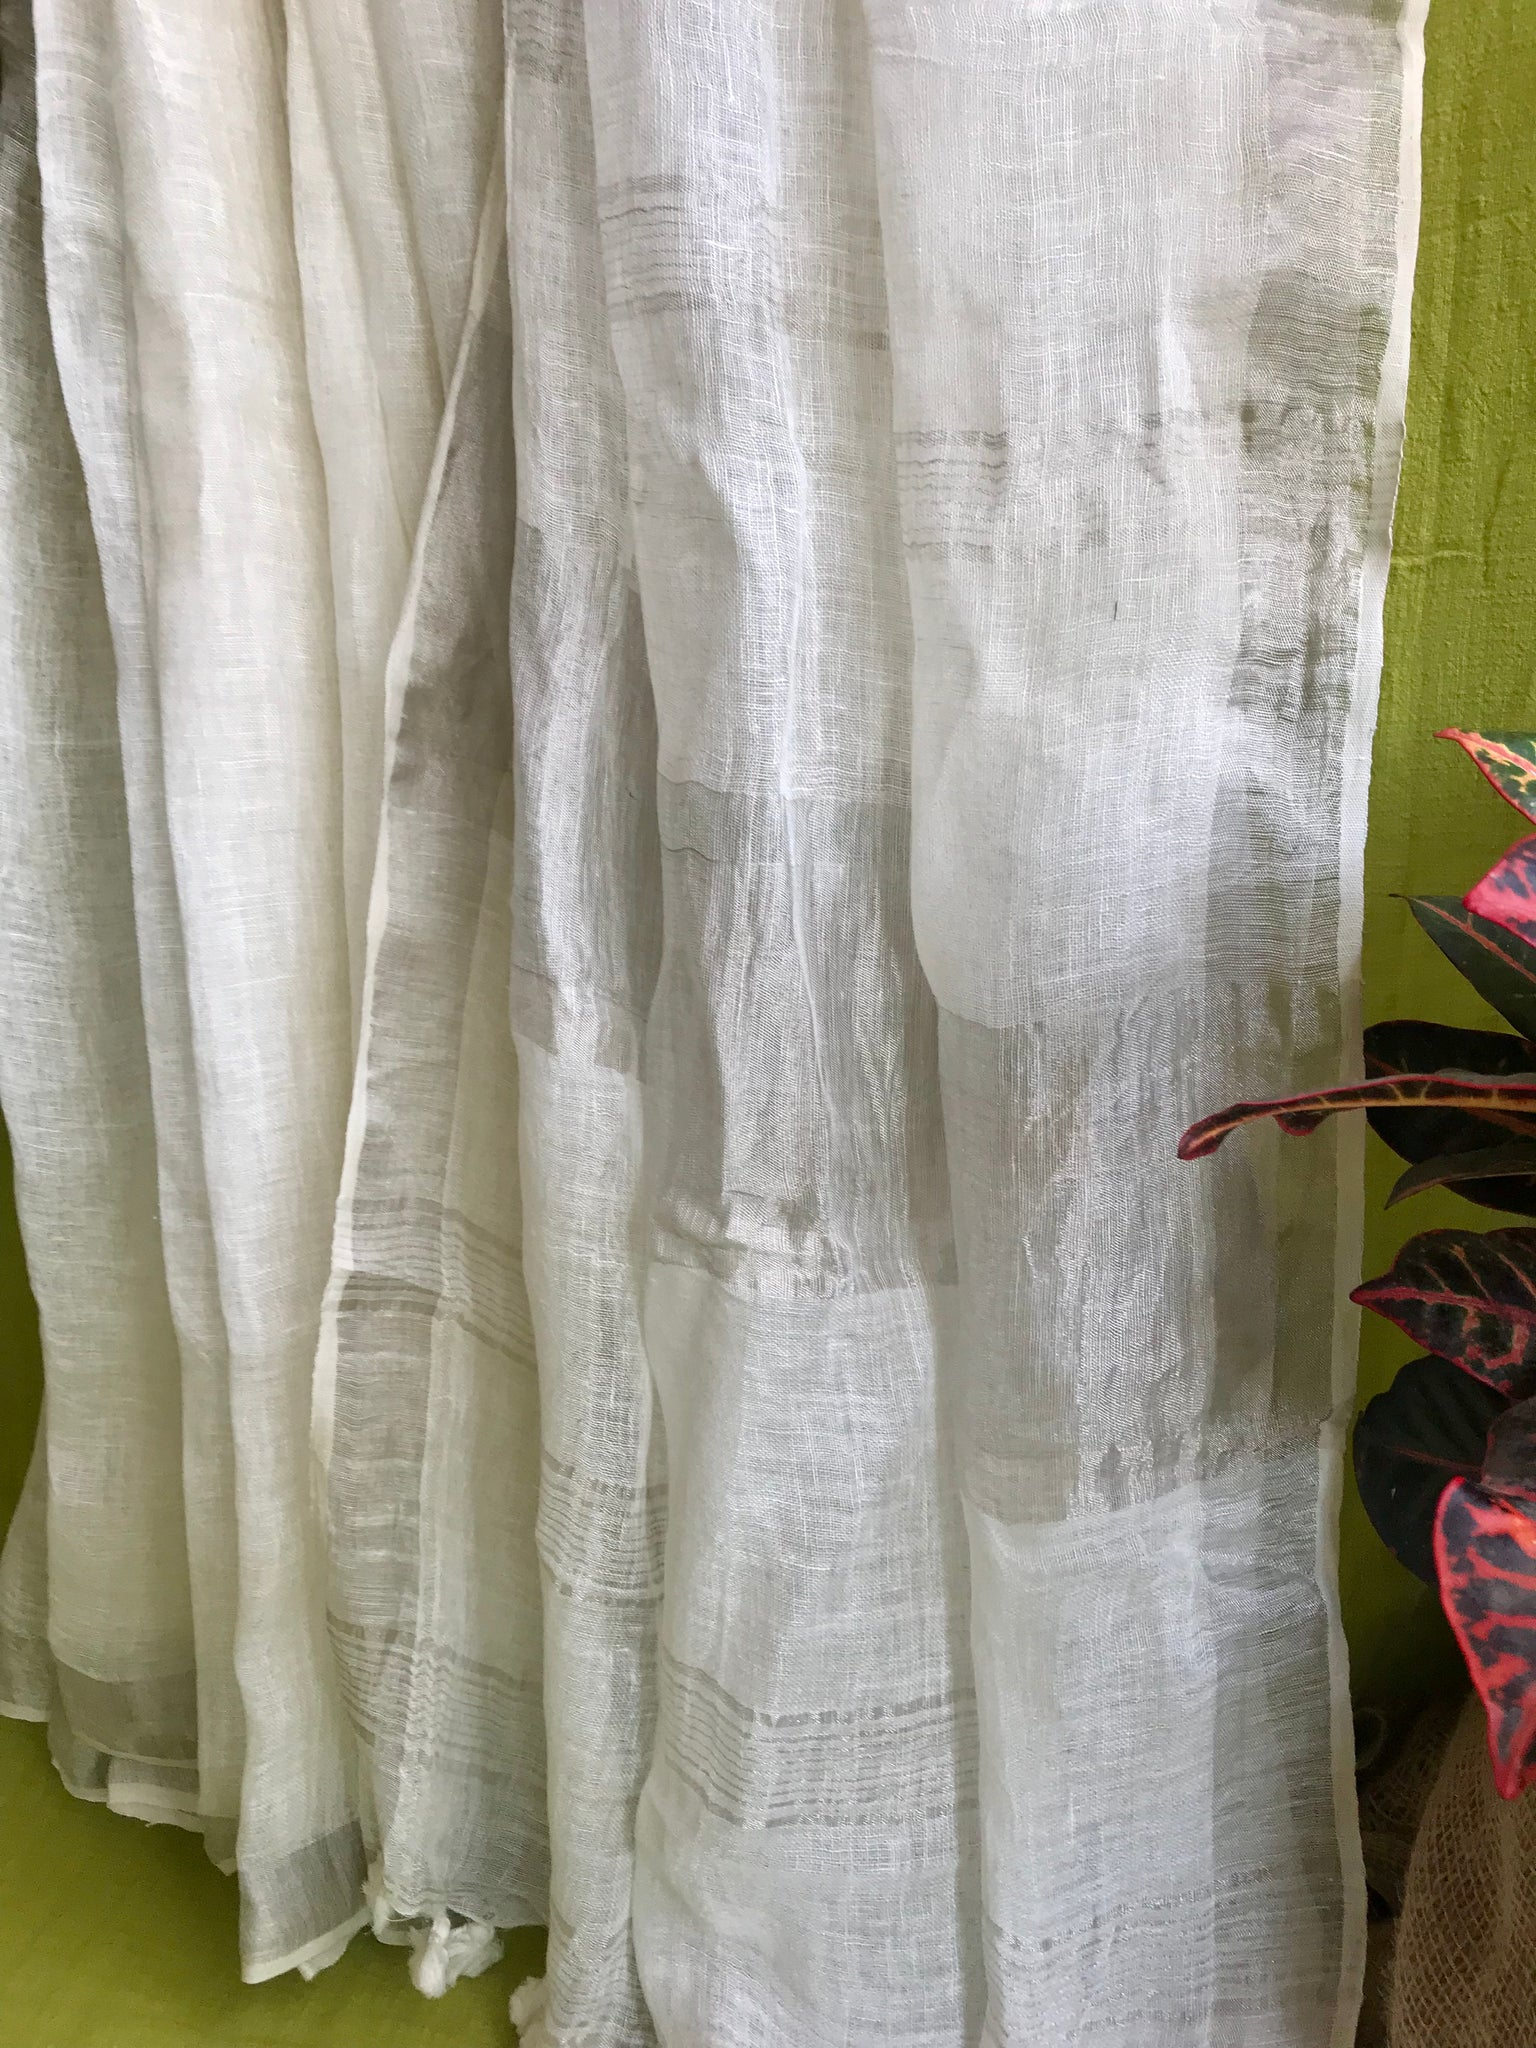 Handwoven linen saree with silver zari - White Tulips